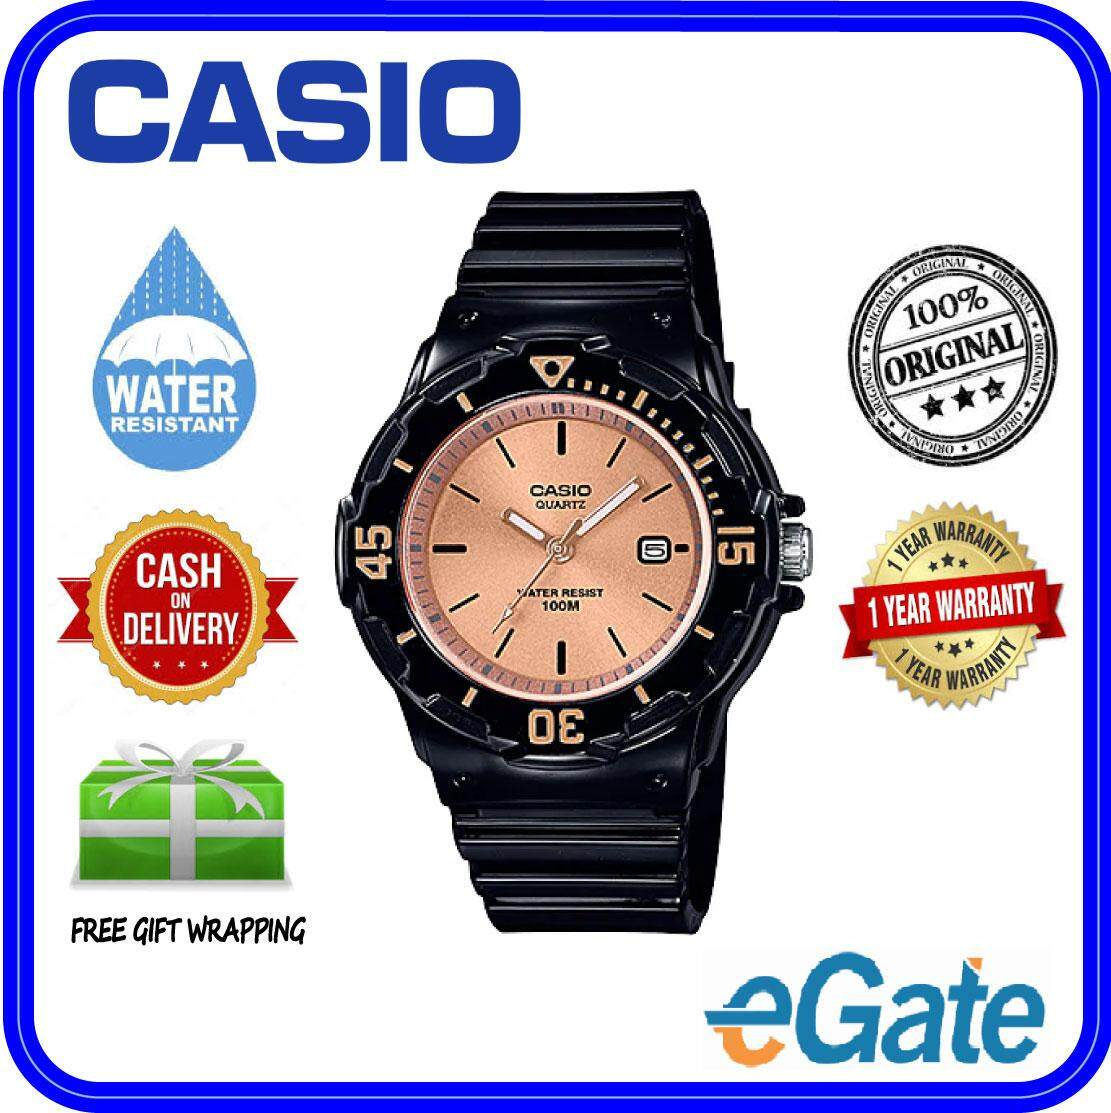 (2 YEARS WARRANTY) Casio LRW-200H-9E2V Analog Kids & Ladies Date Functioning Classic Black Resin Strap Original Casual Watch (LRW-200H) Malaysia